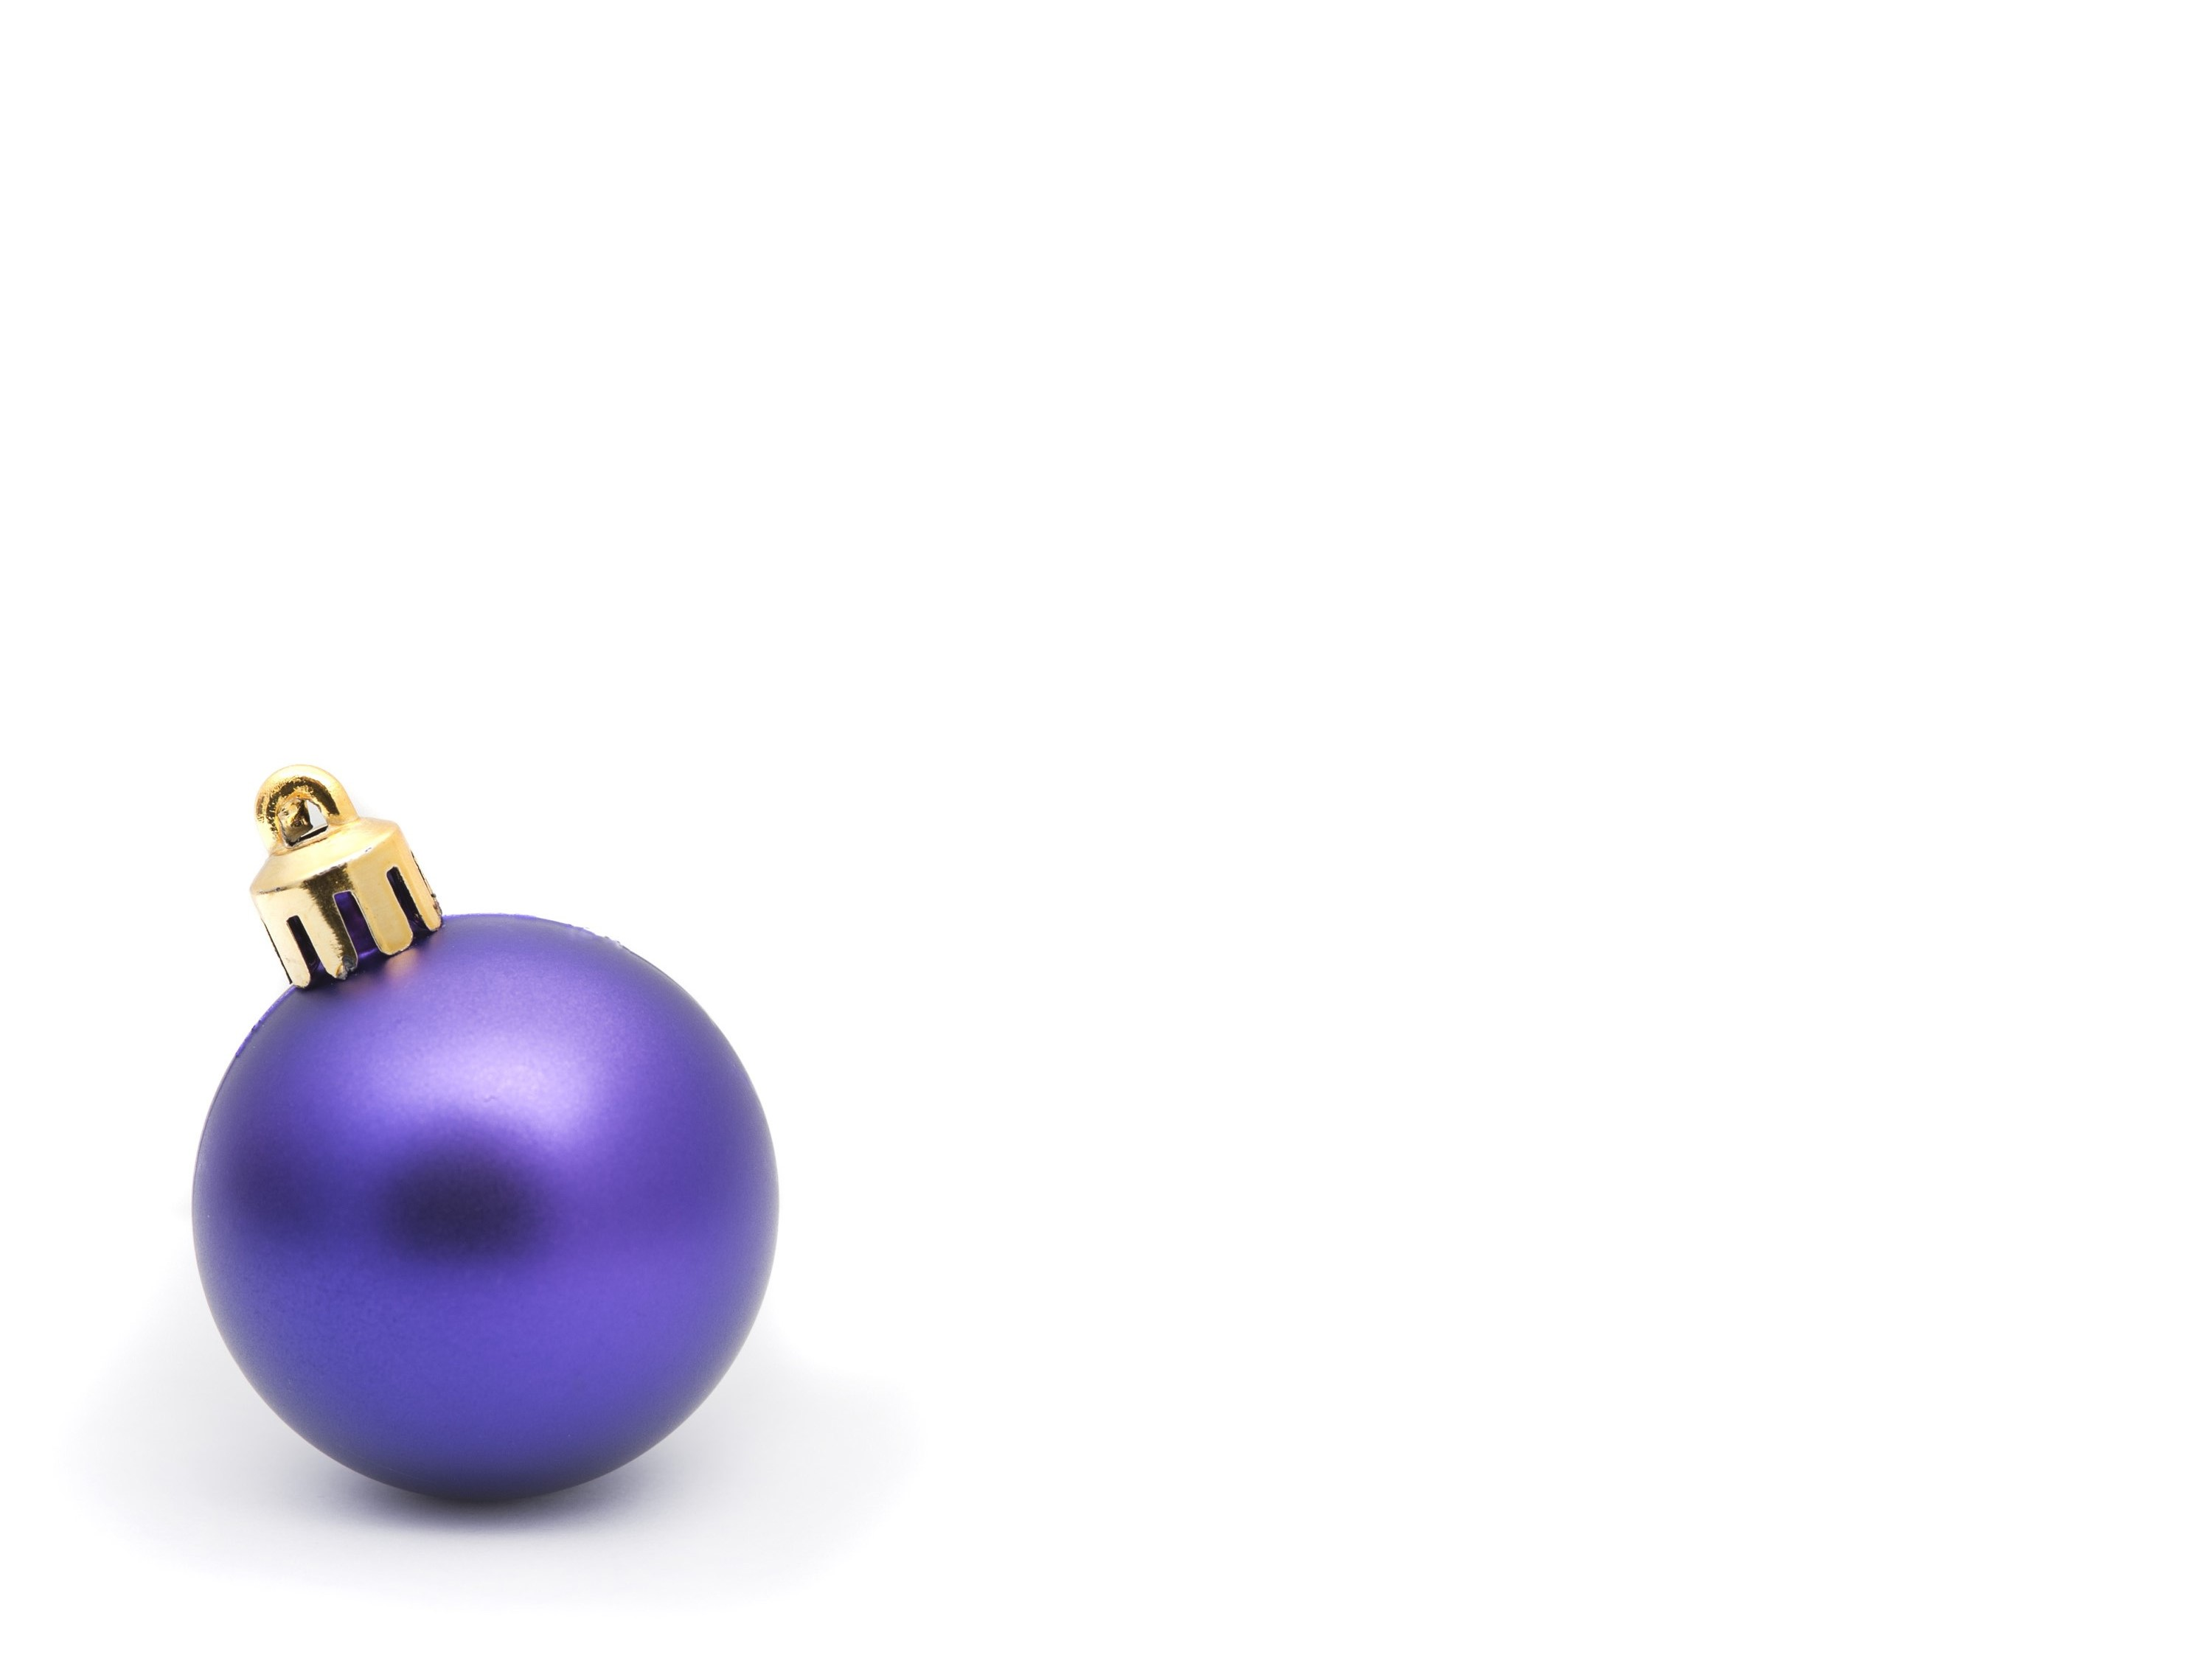 Single purple Christmas bauble to the bottom left of the frame with huge white copyspace for your Christmas message